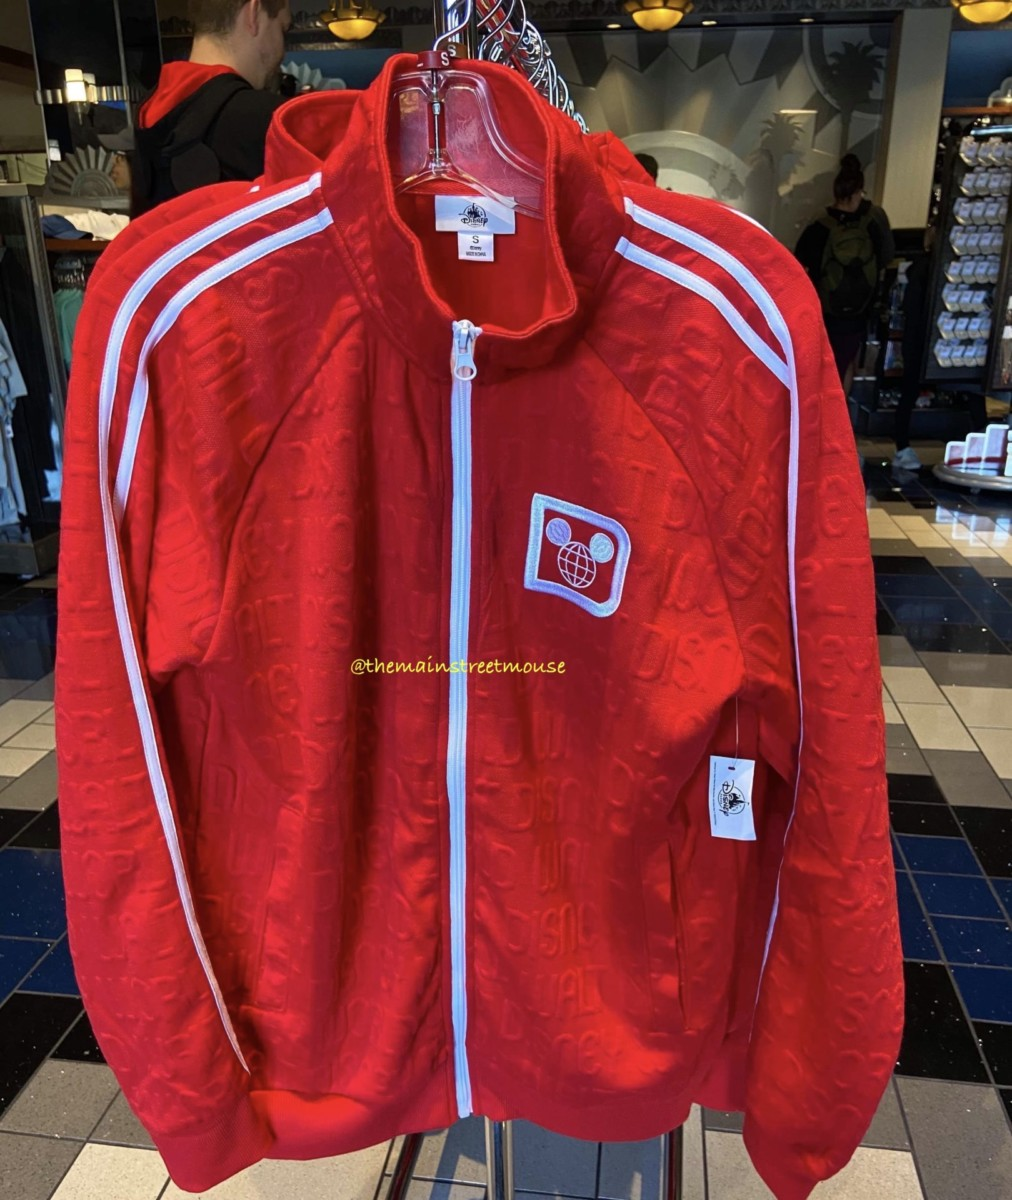 New Retro Style Merch at Disney Parks! Spirit Jersey, Shoes and More! 8